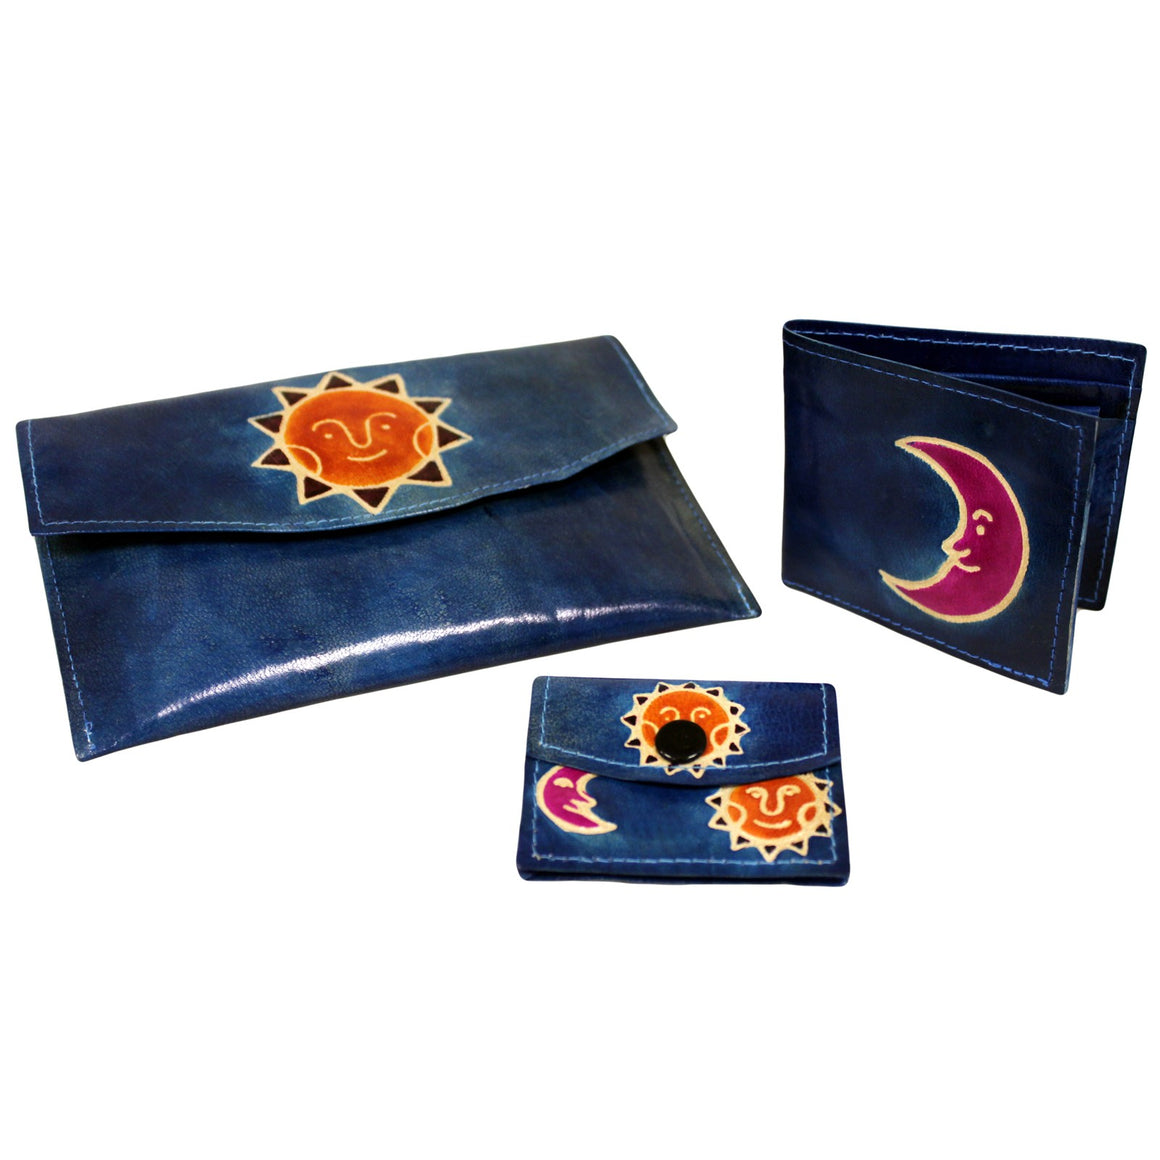 Leather Purse Purse Set - Sun & Moon - Teal